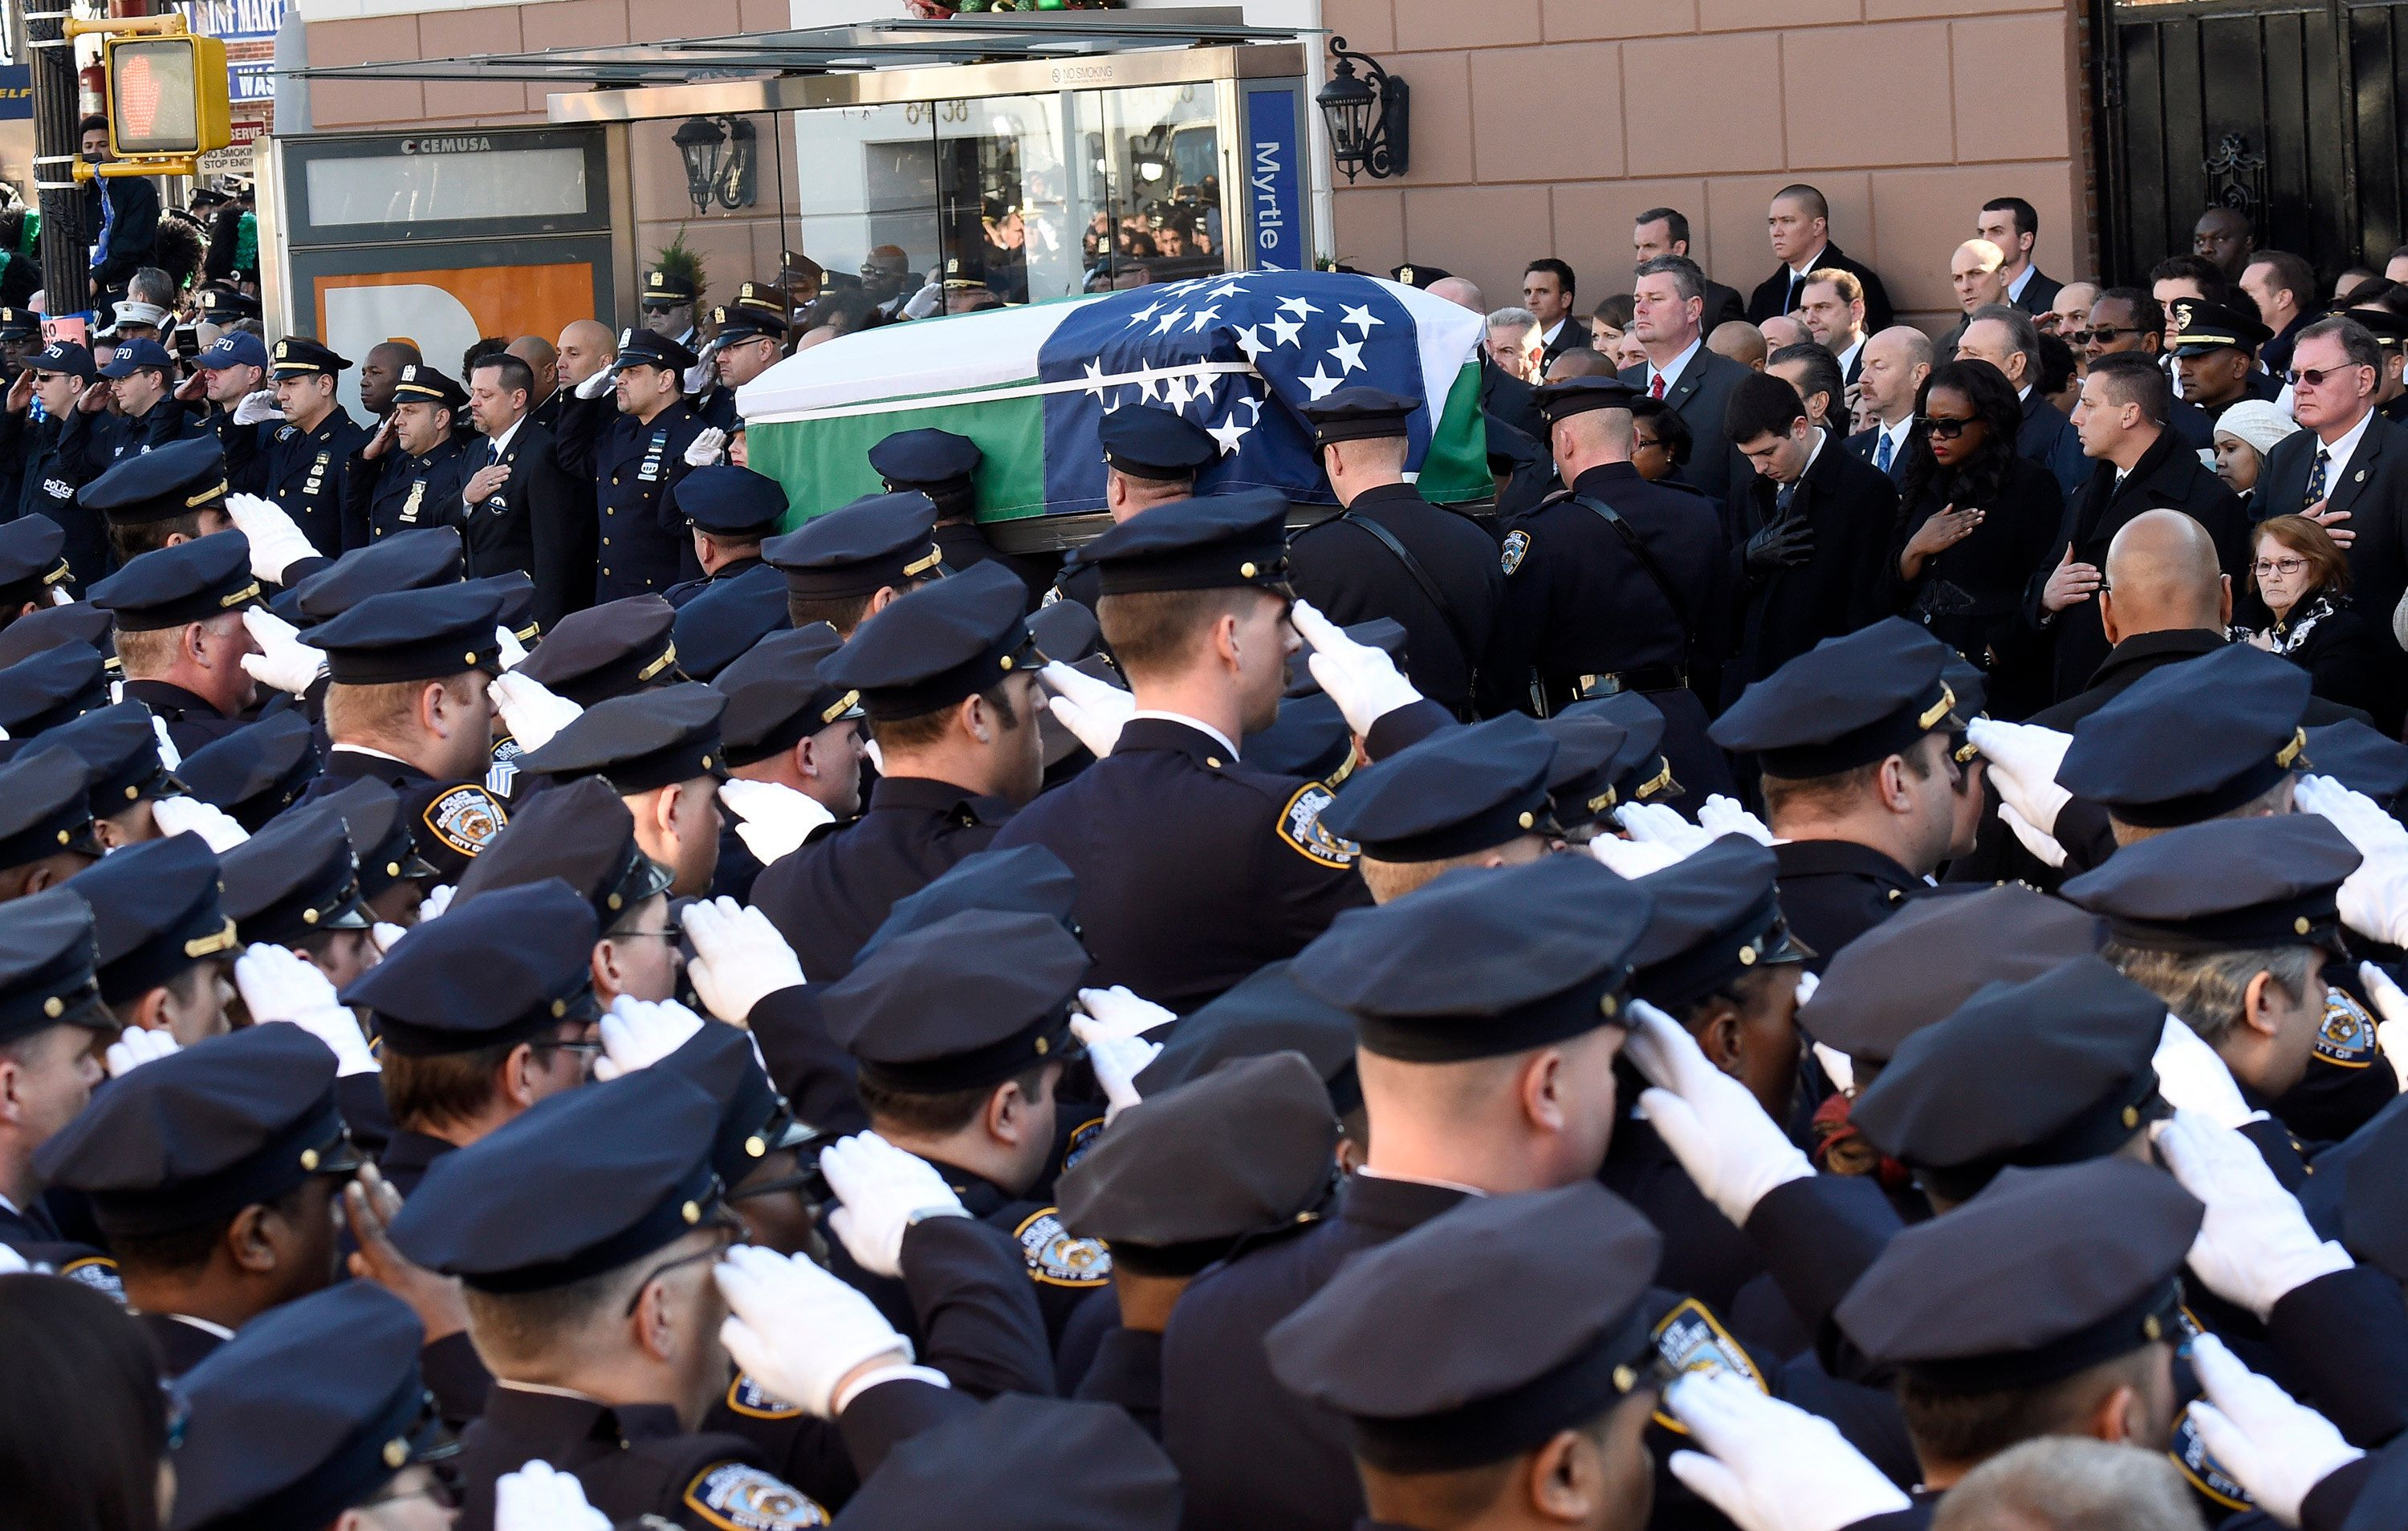 Pallbearers carry the casket at the Dec. 27, 2014, funeral of Officer Rafael Ramos, one of two police officers murdered while